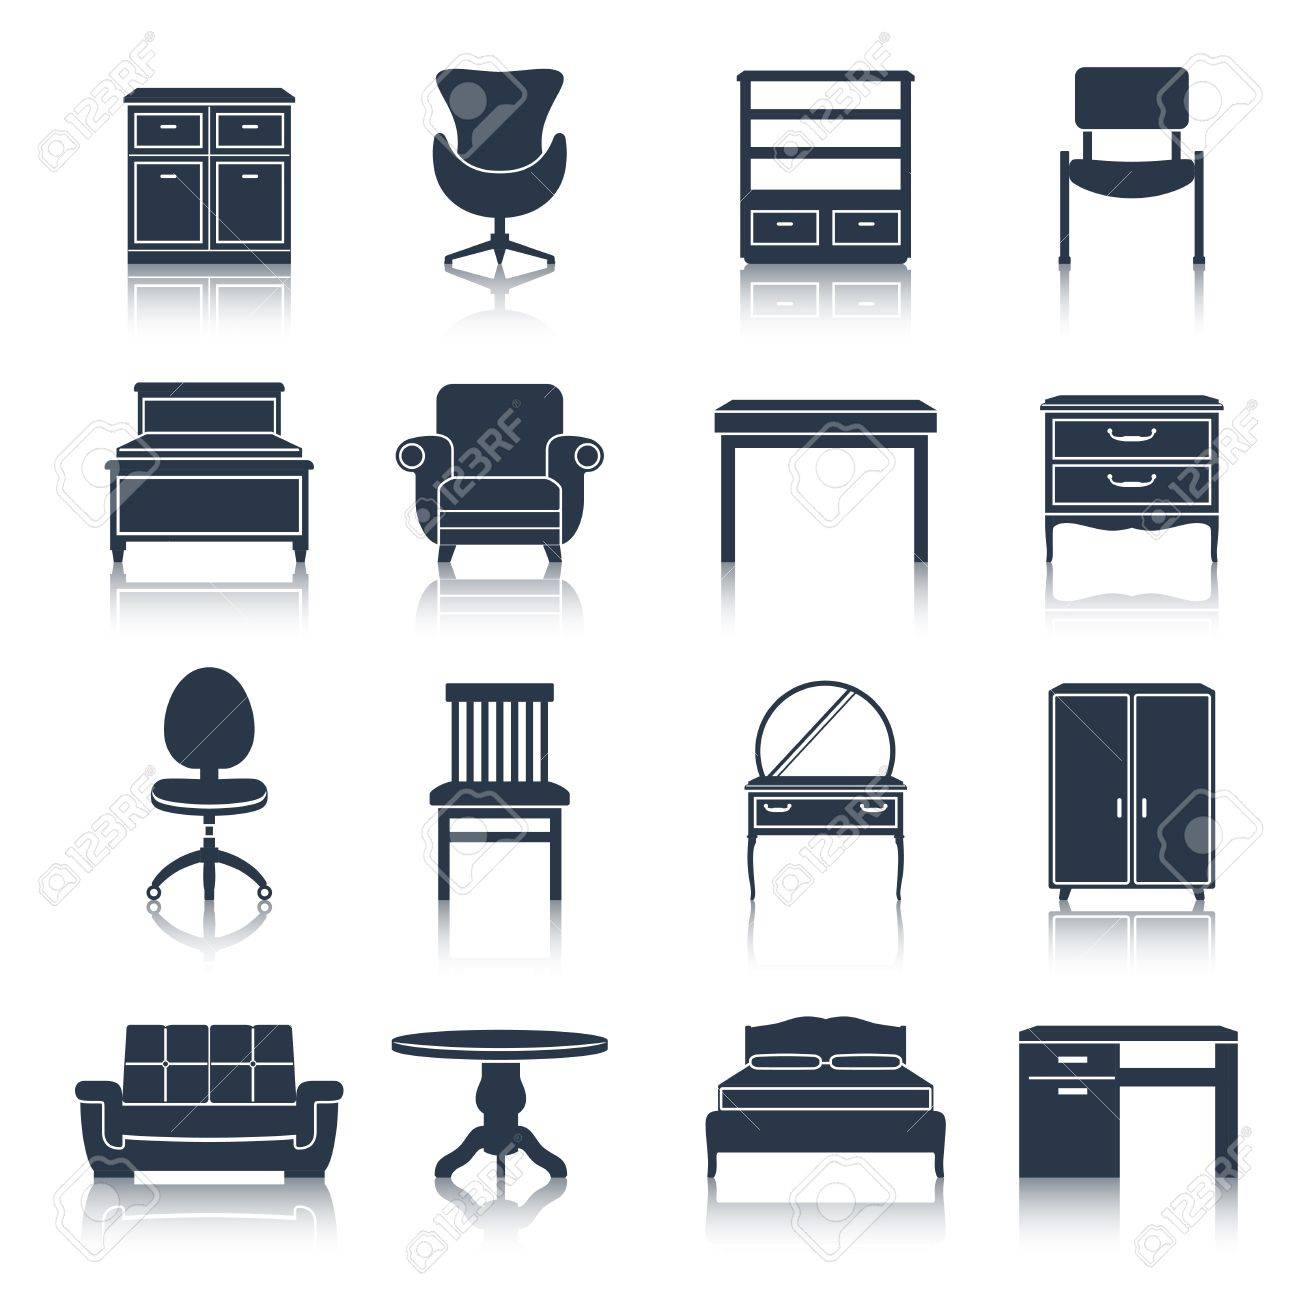 furniture icons black set with bed sideboard chair office table isolated vector illustration stock vector brilliant office table top stock photos images